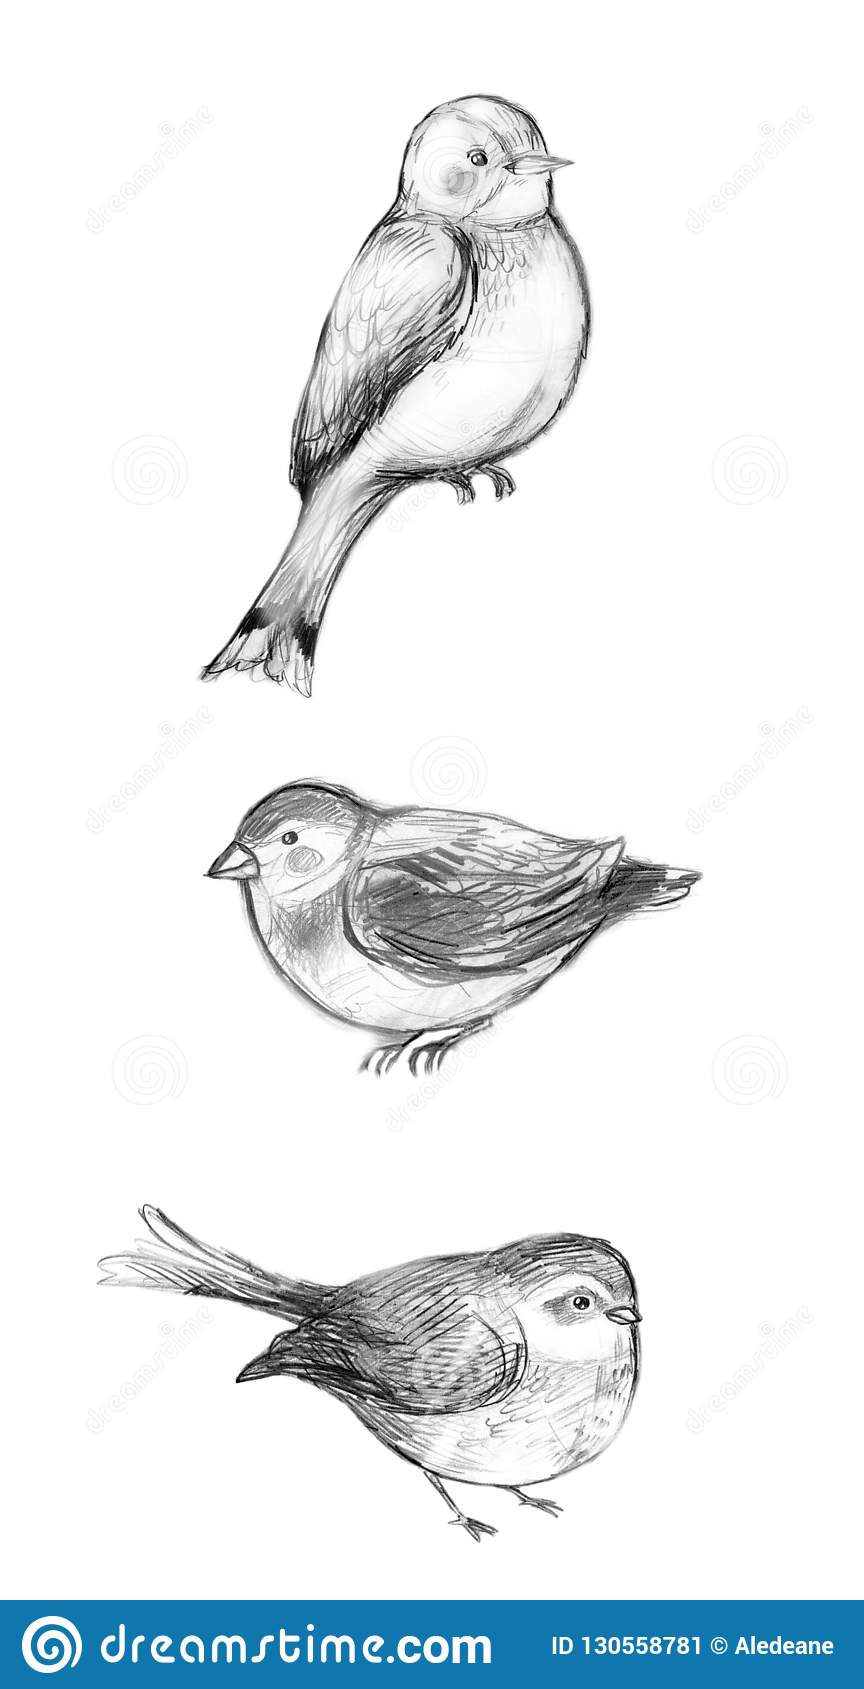 Monochrome sketches done in pencil featuring three cute birds isolated on white drawn in realistic style